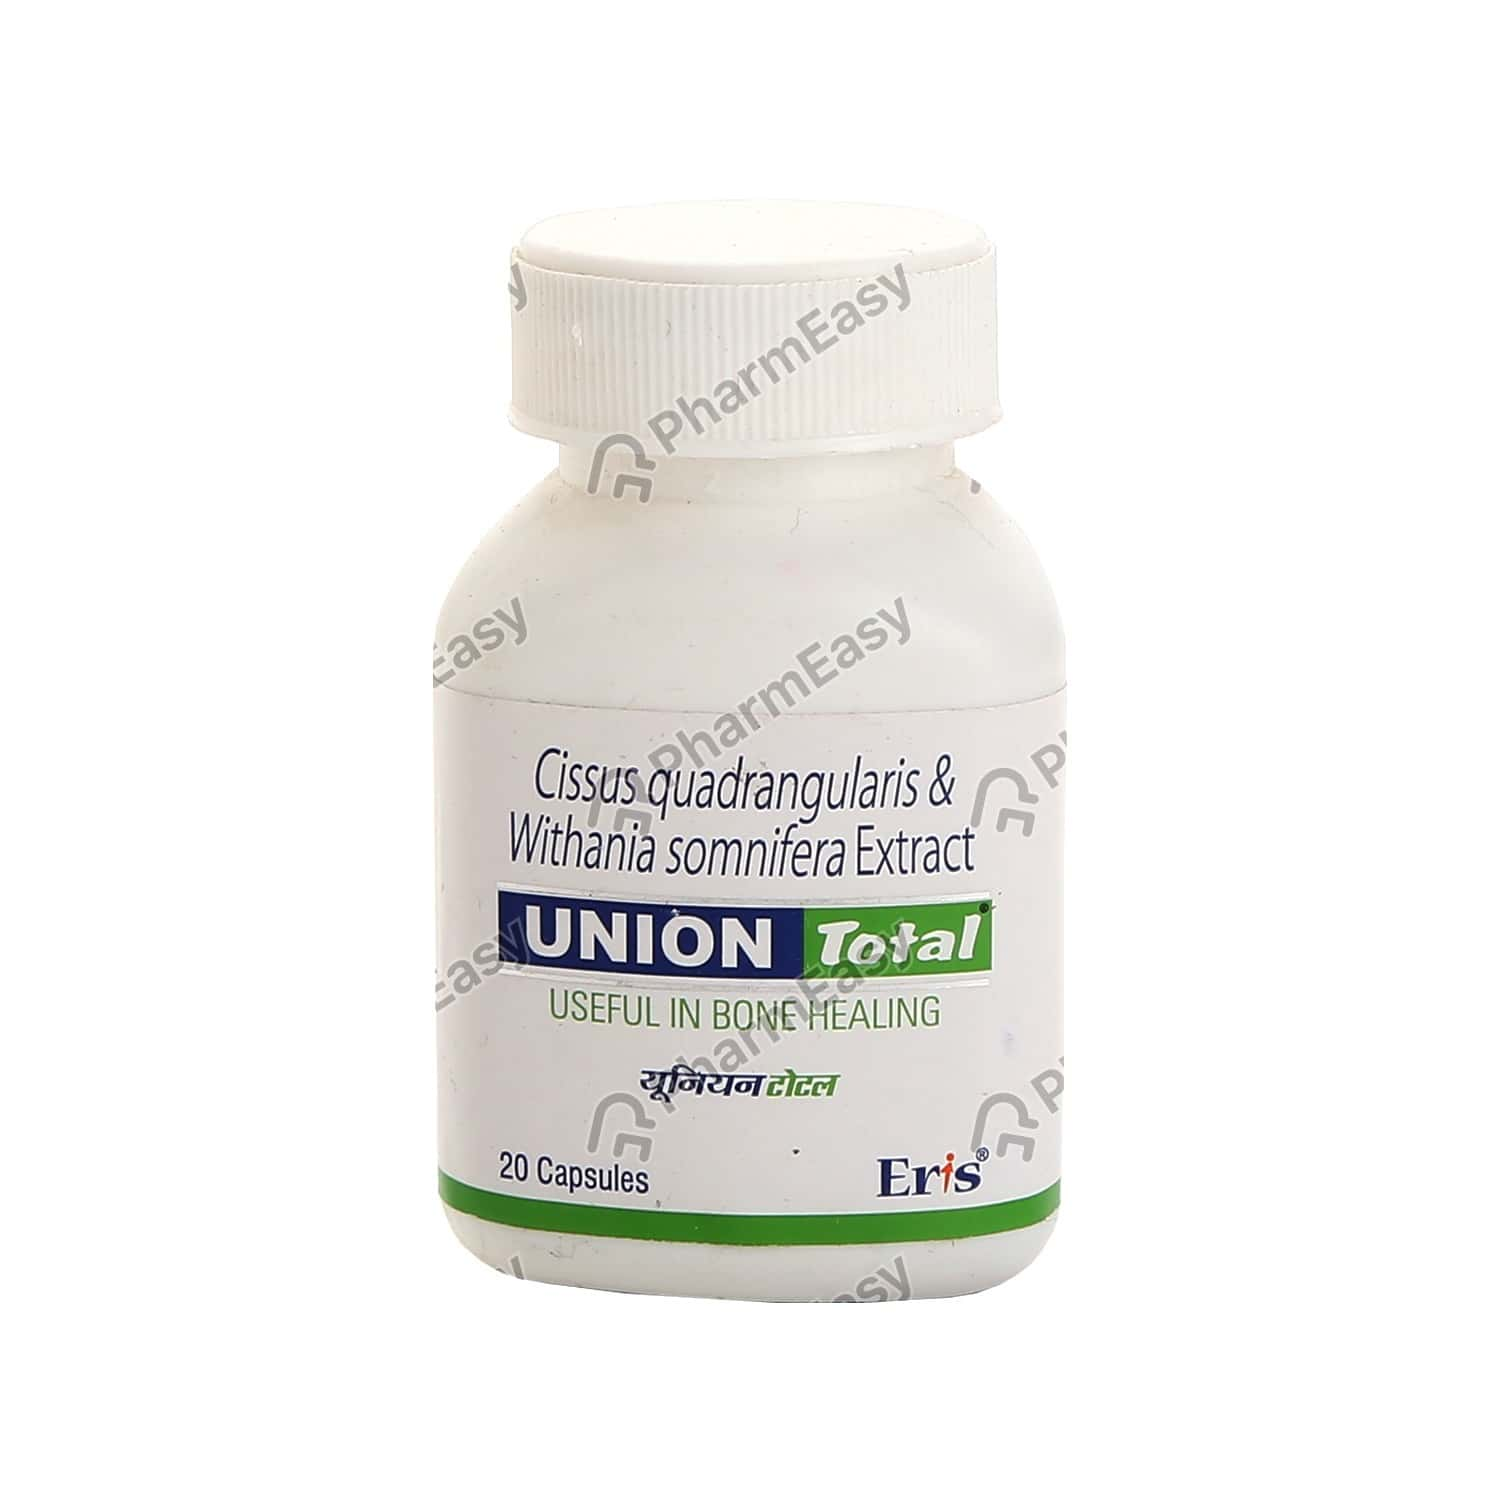 Union Total Bottle Of 20 Capsules